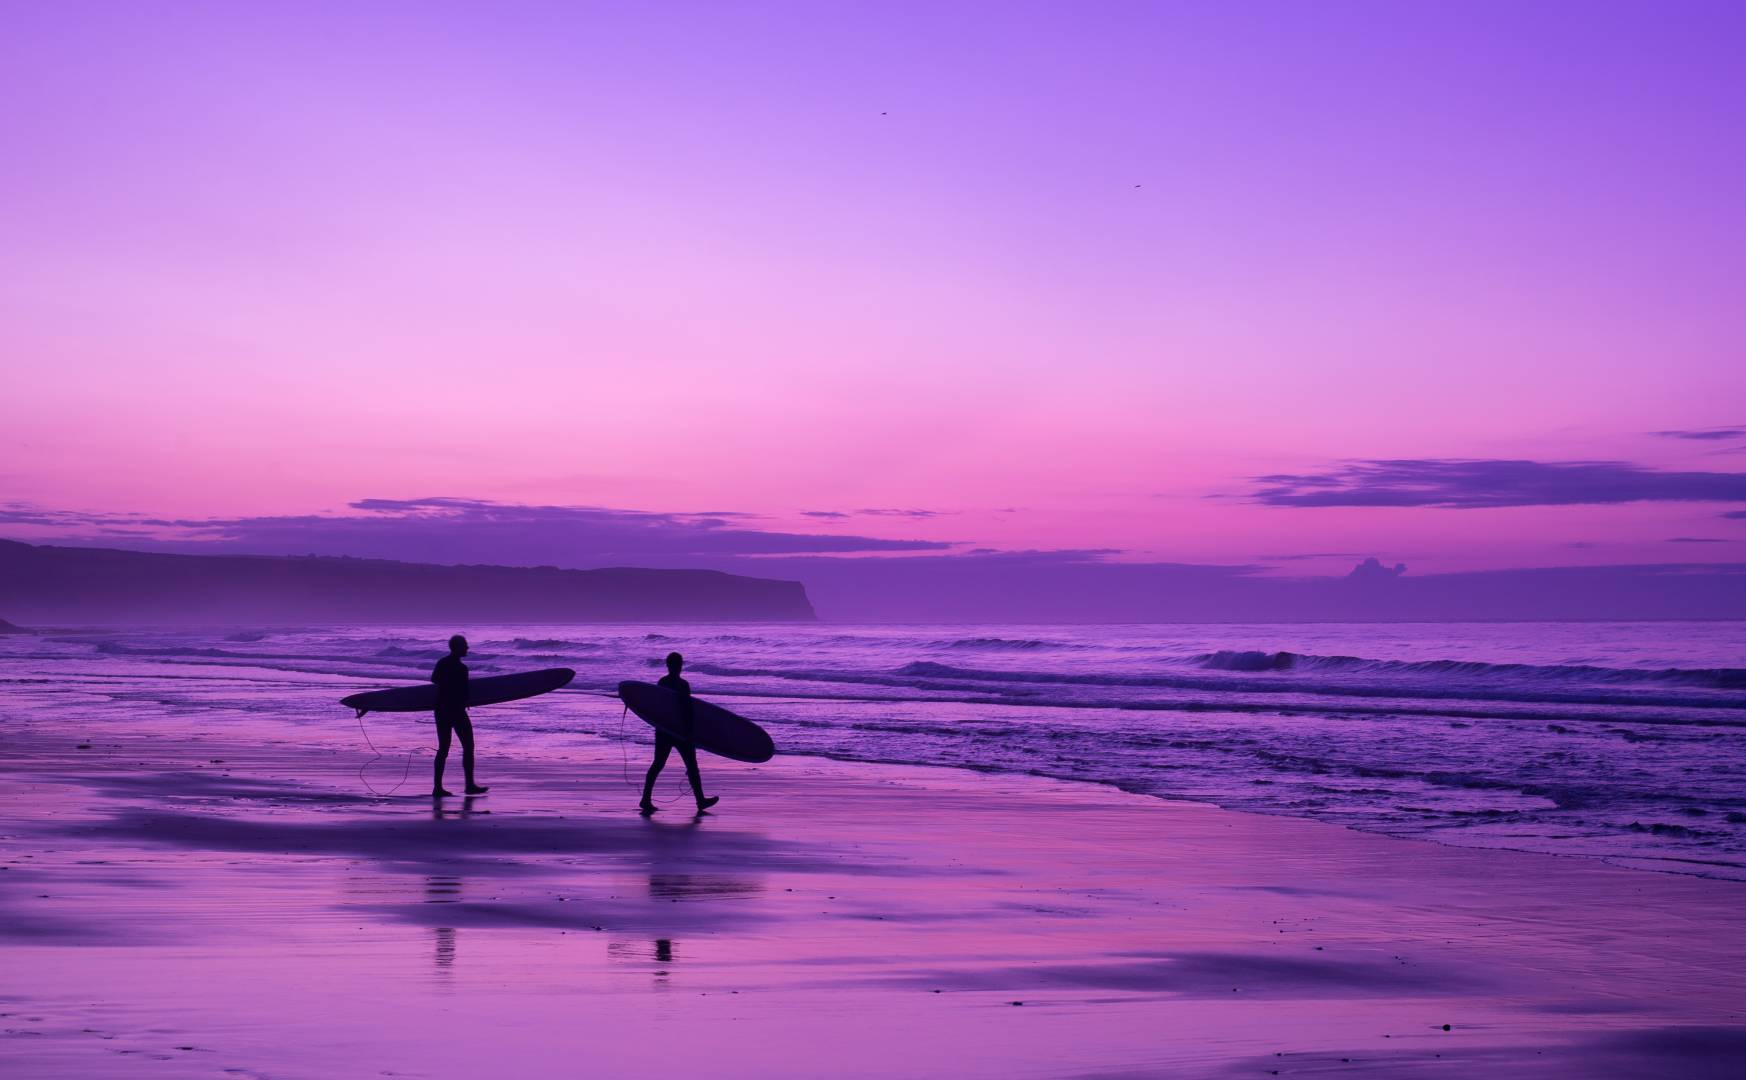 Surfer Dudes at Sunset - Processed in Lightroom - Nikon Df